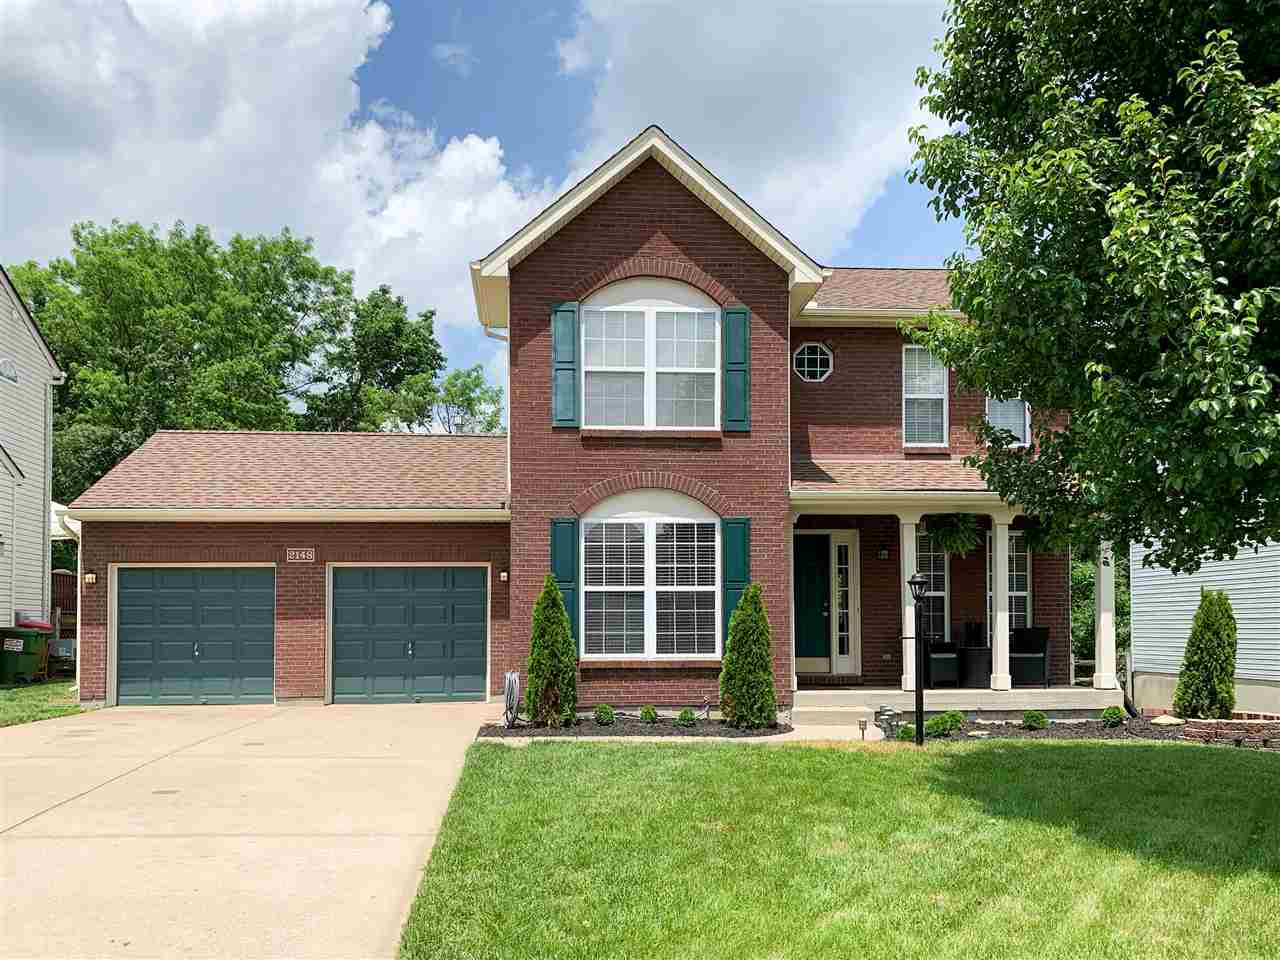 Photo 1 for 2148 Glenview Dr Hebron, KY 41048